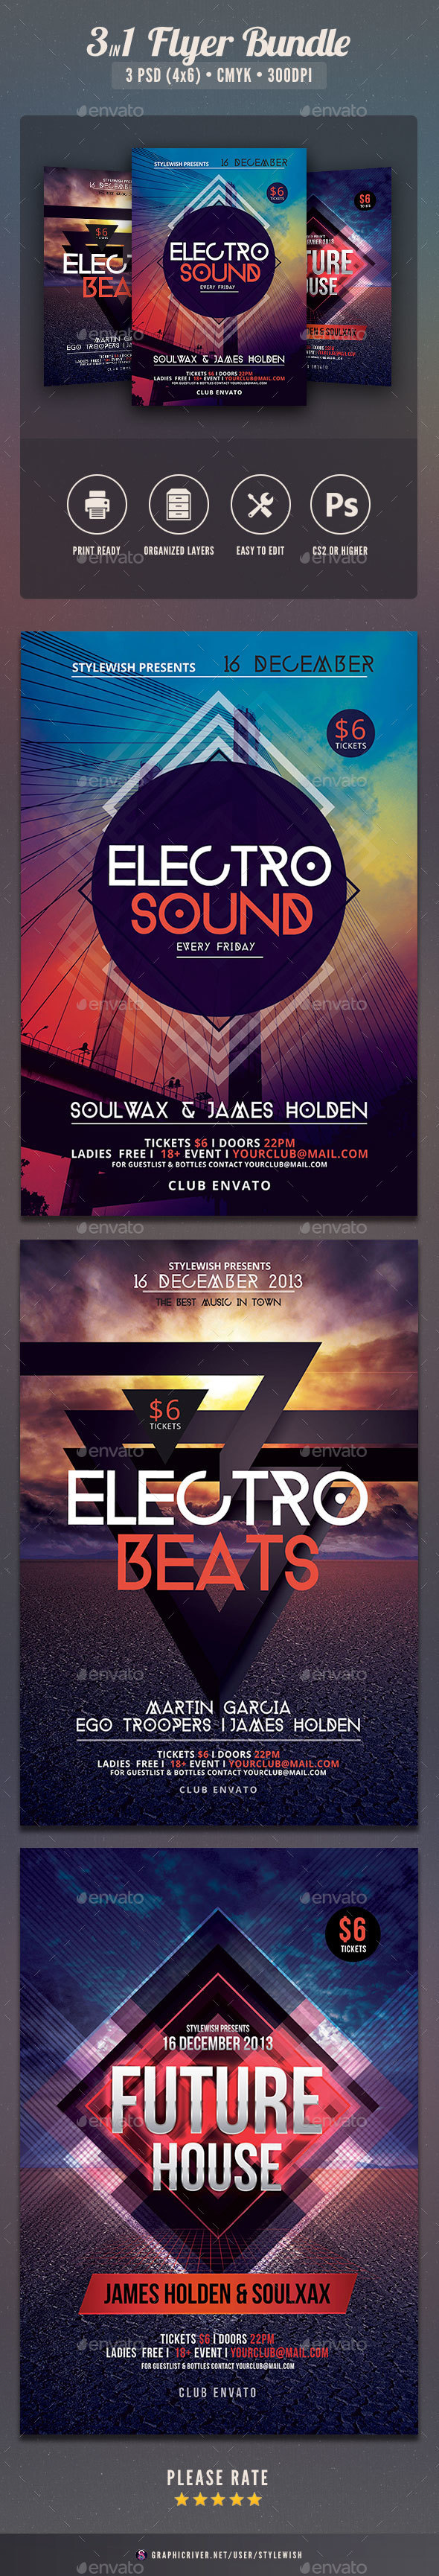 Electro Party Flyer Bundle Vol2 - Clubs & Parties Events